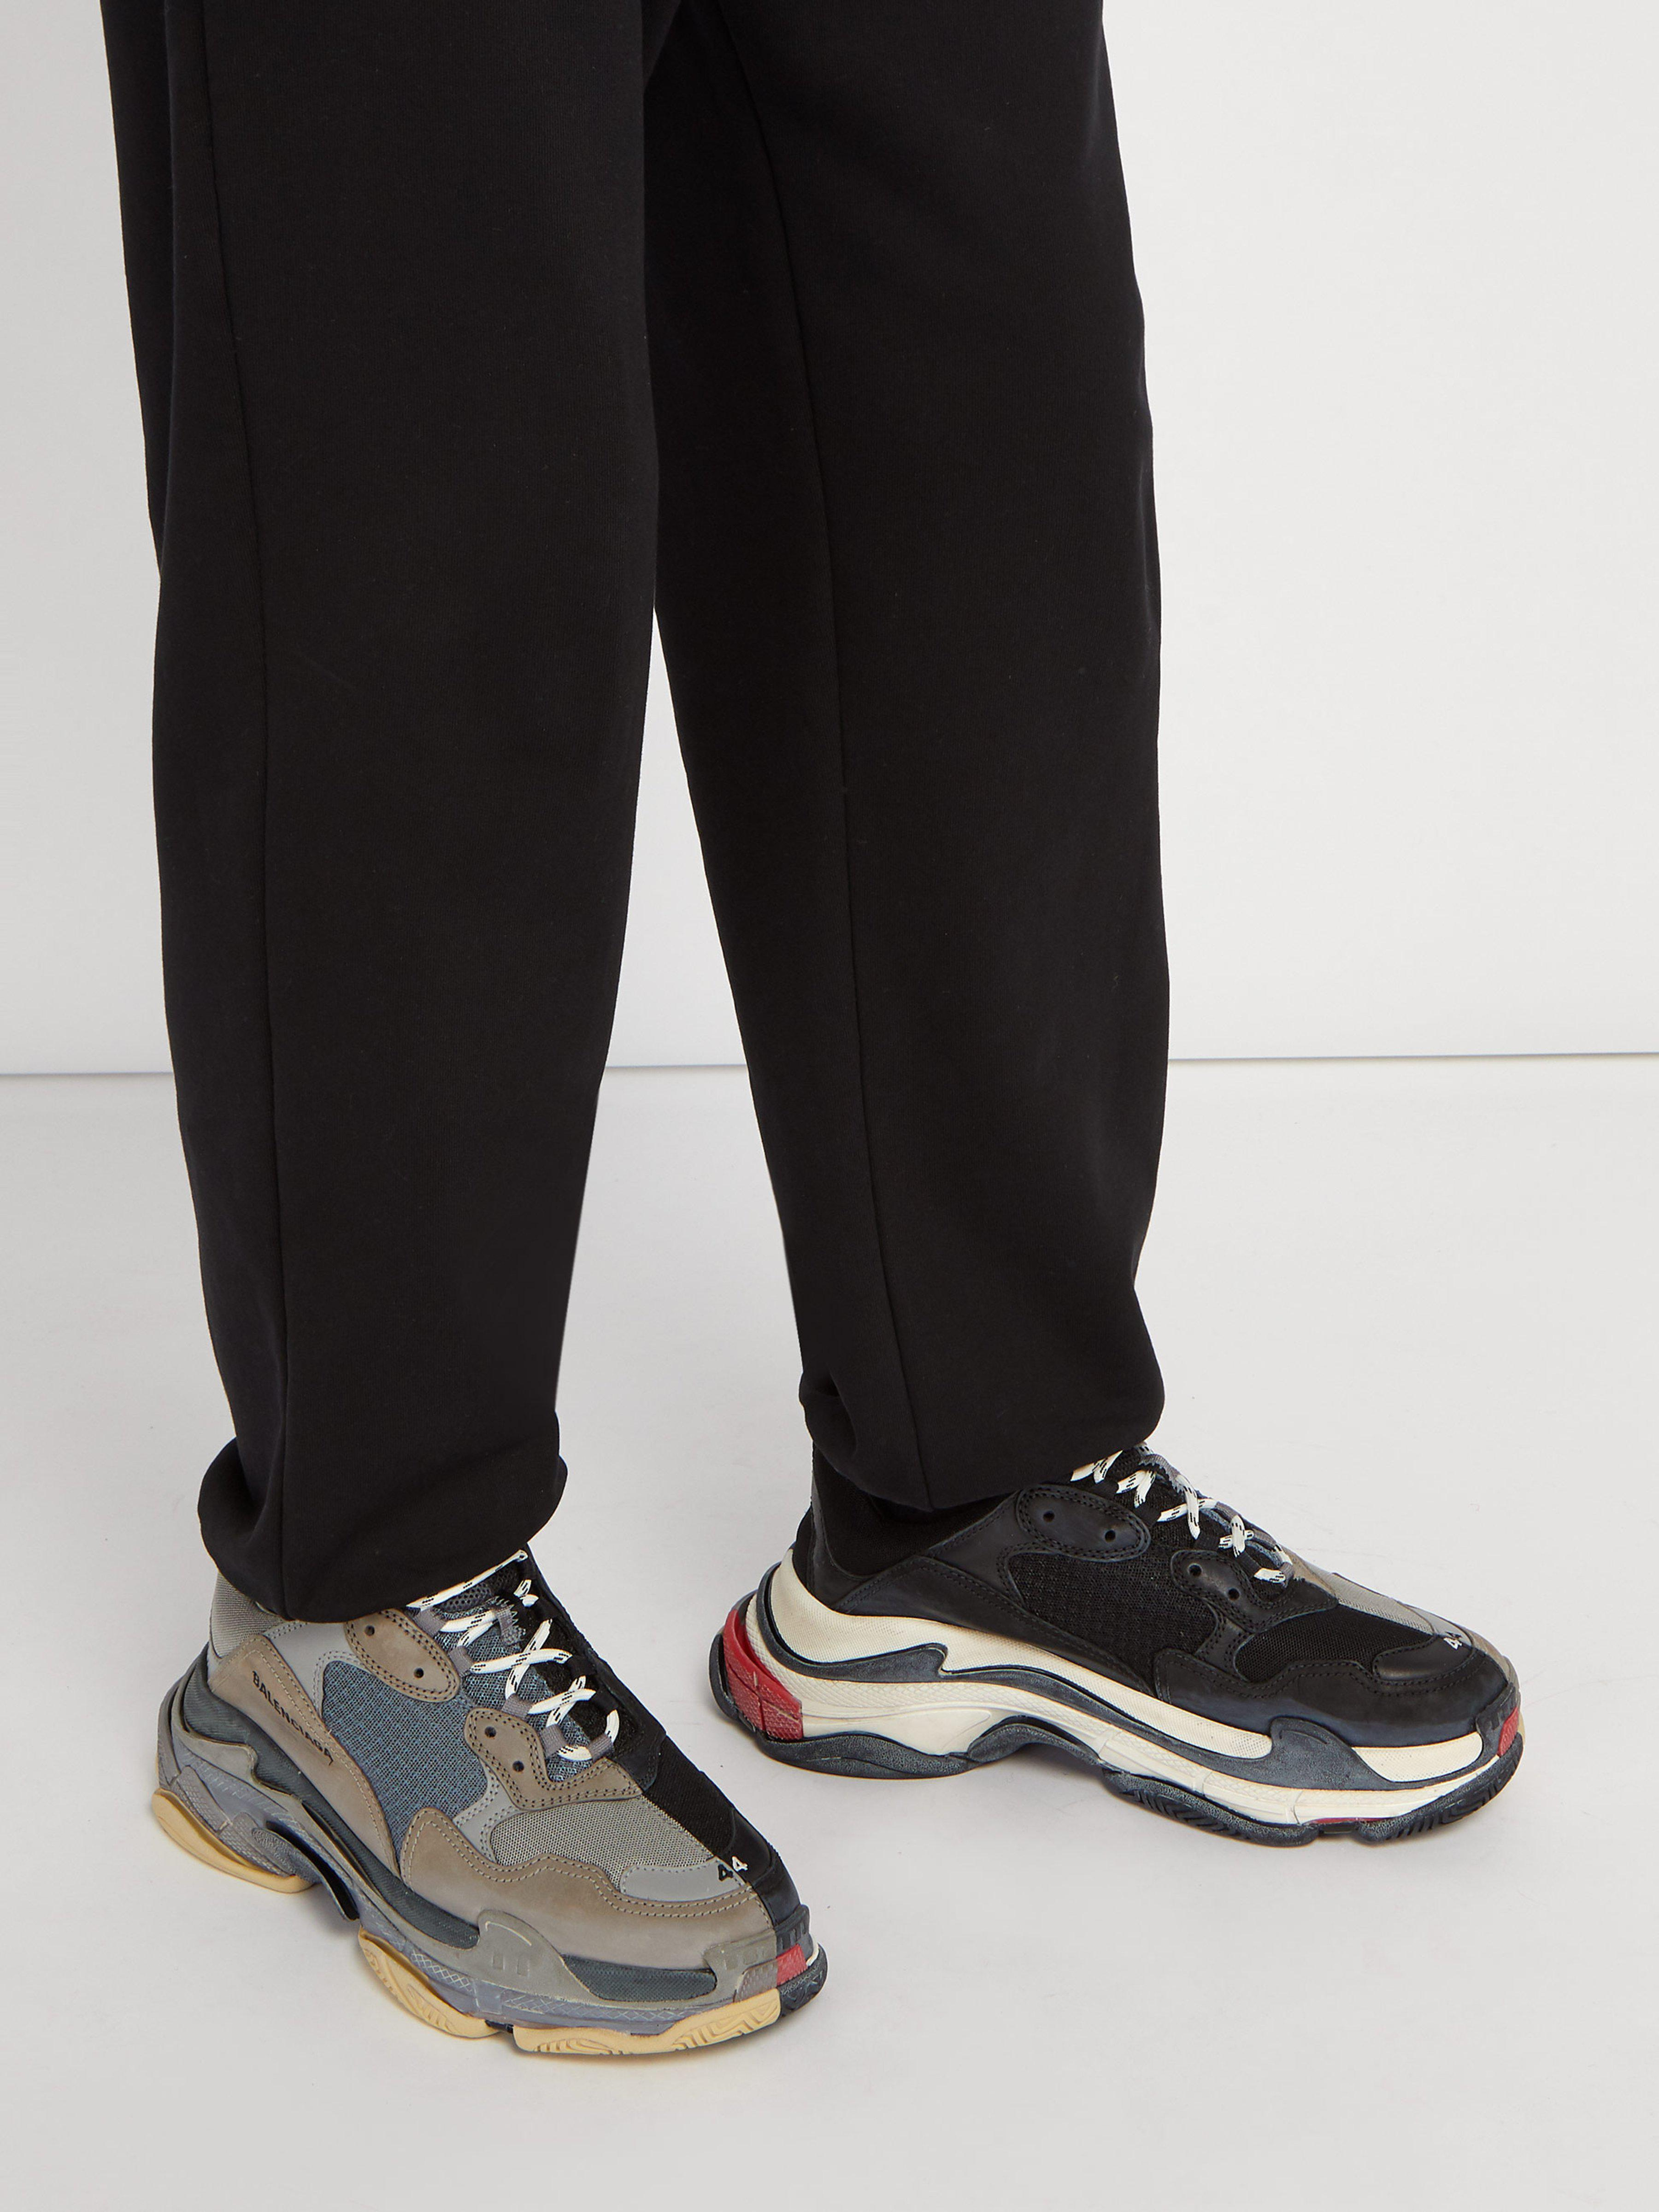 fc9c7be79bc05d Balenciaga Men s Triple S Trainer Sneakers - Grey Black - Size 39 (6) E in  Gray for Men - Save 14% - Lyst